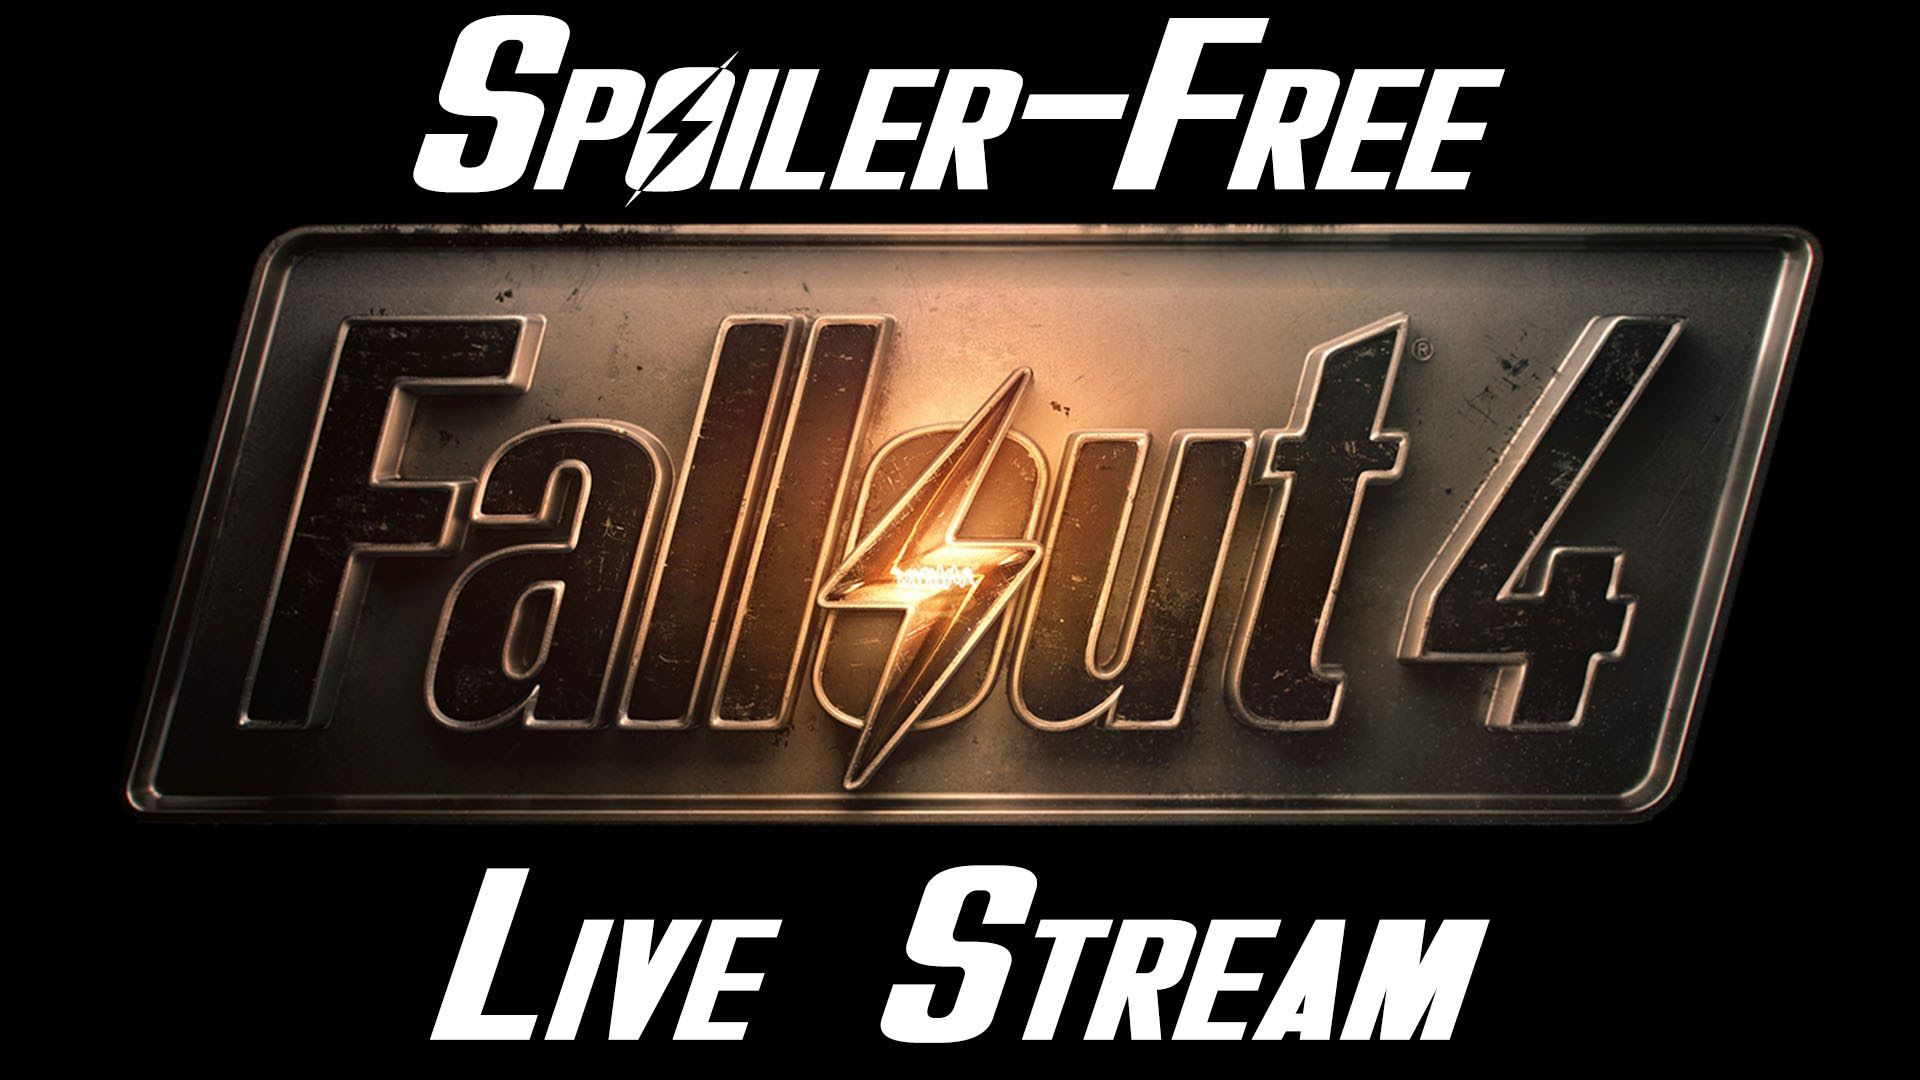 ShoddyCast is streaming fallout 4 right now Mogetfog